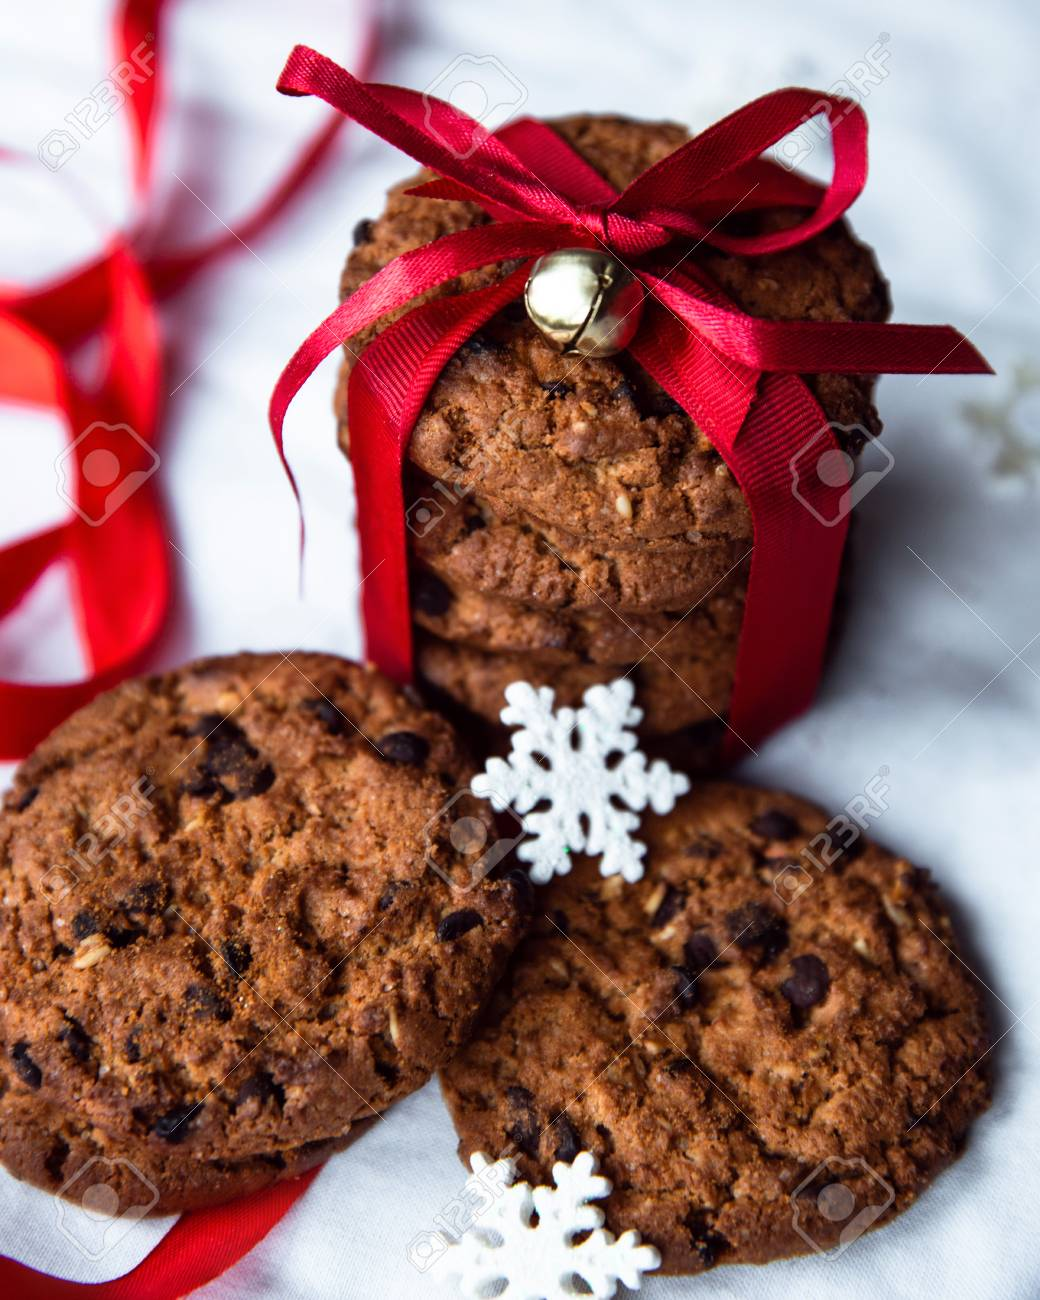 Natural Handmade Organic Snack For Healthy Christmas Breakfast With ...